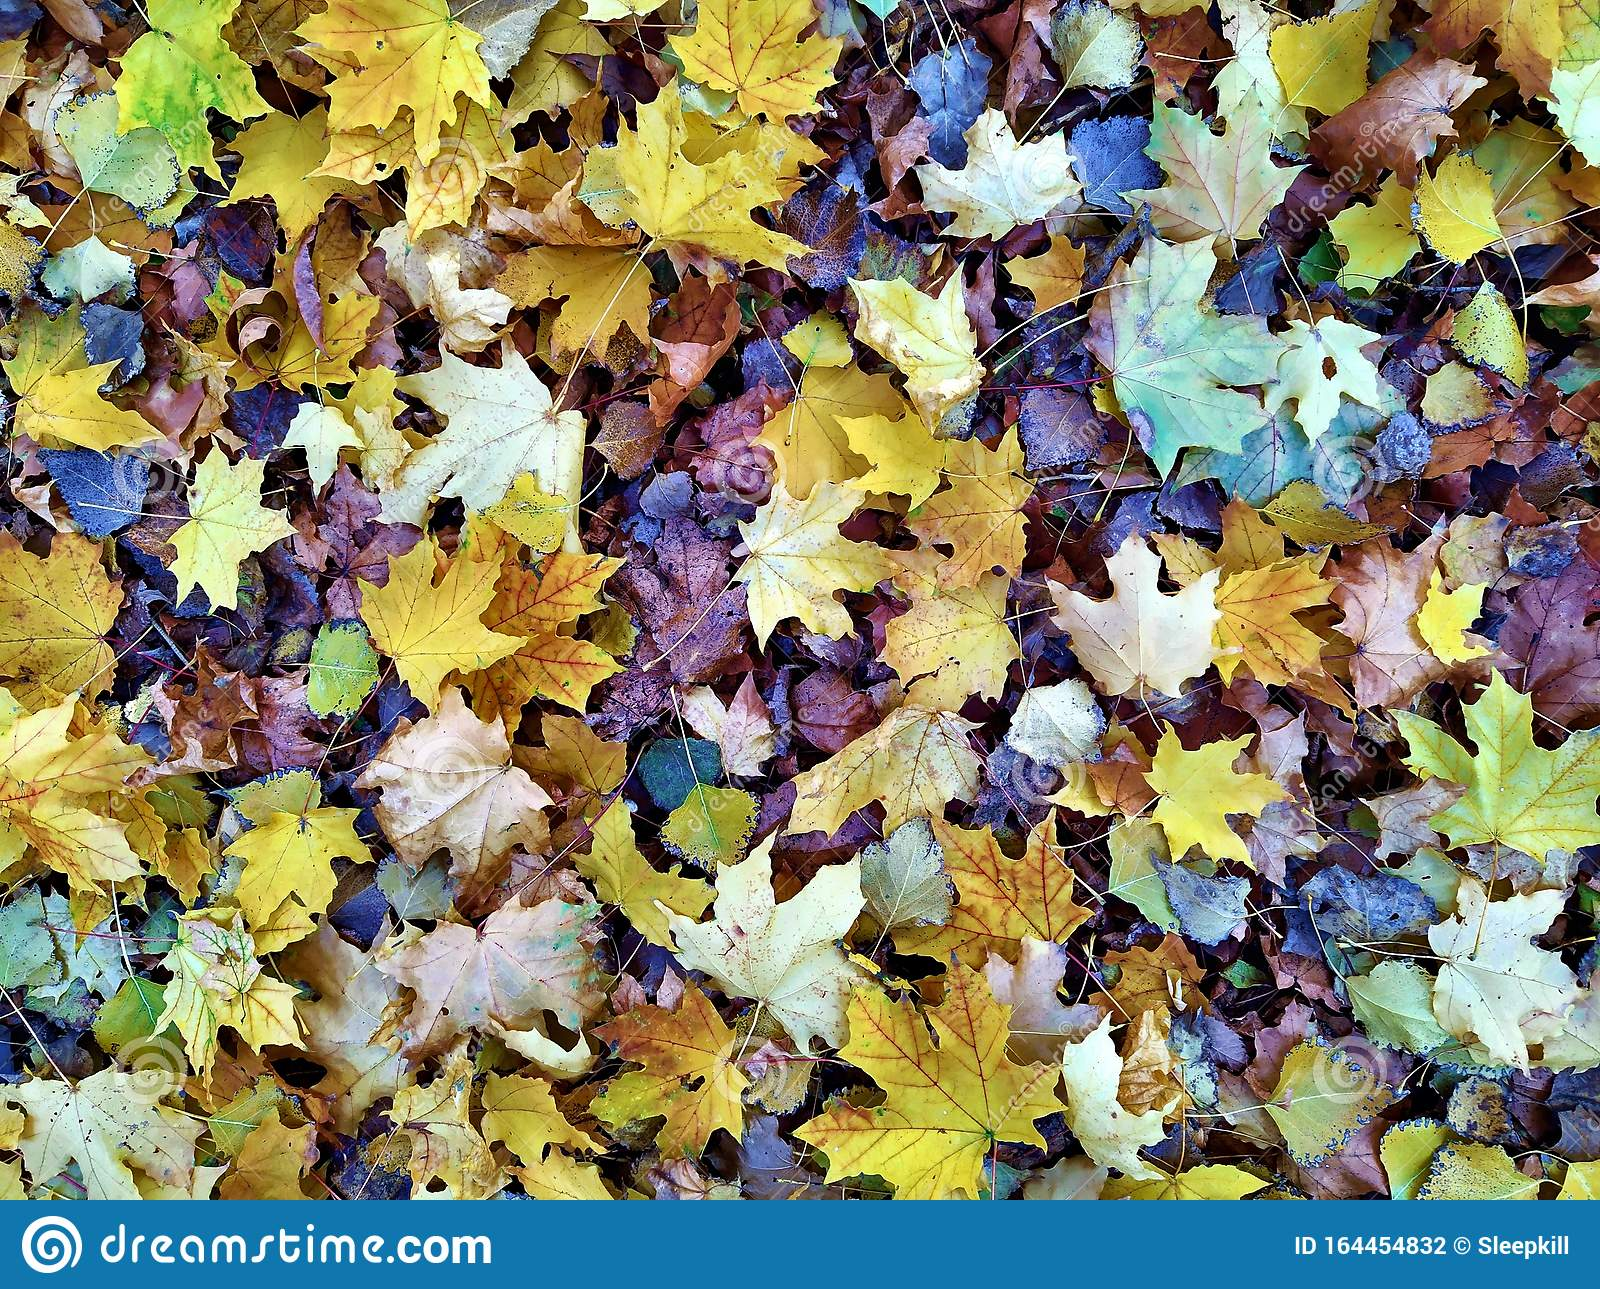 Dry Leaf On Ground Leafs Cover Surface Beautiful Nature